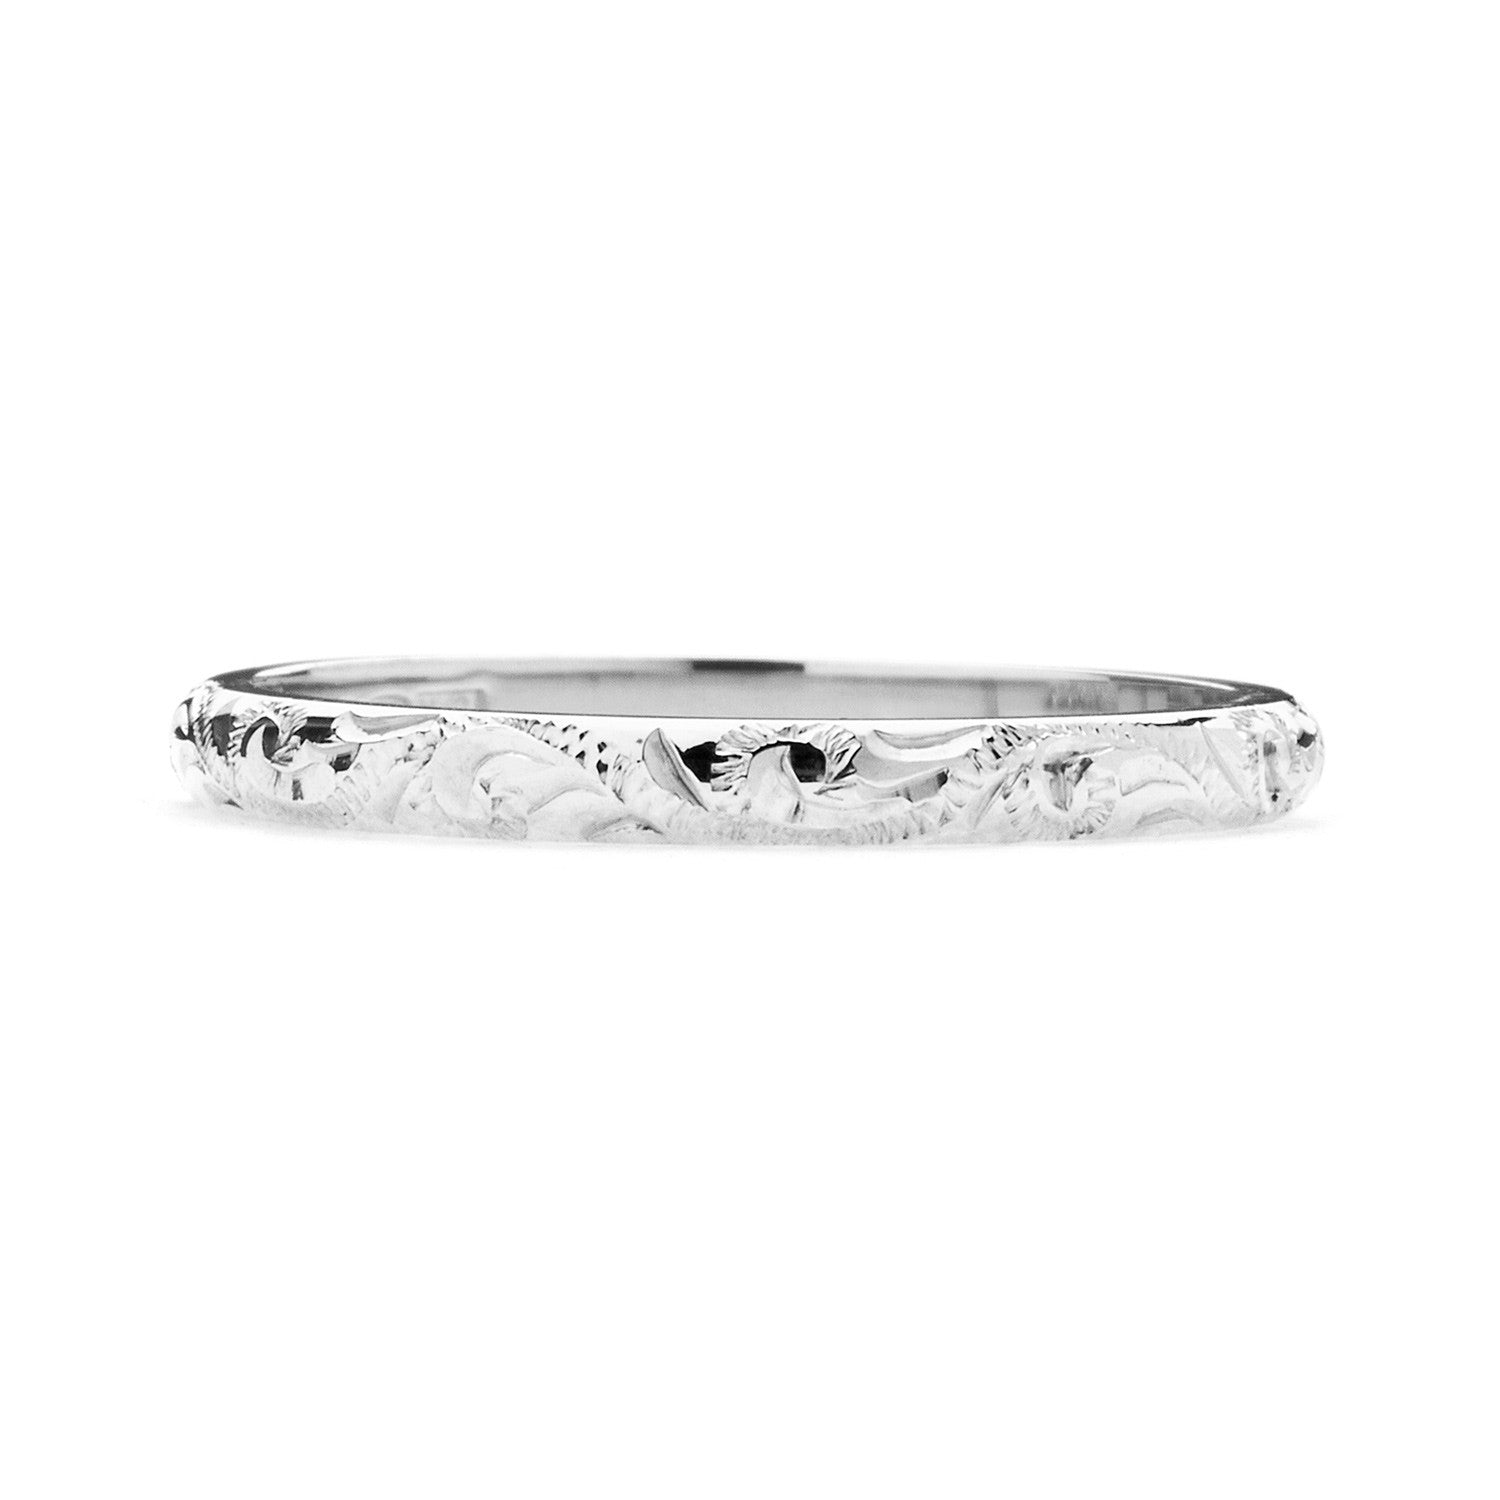 Scrolls Engraved Ethical Platinum Wedding Ring, 2mm